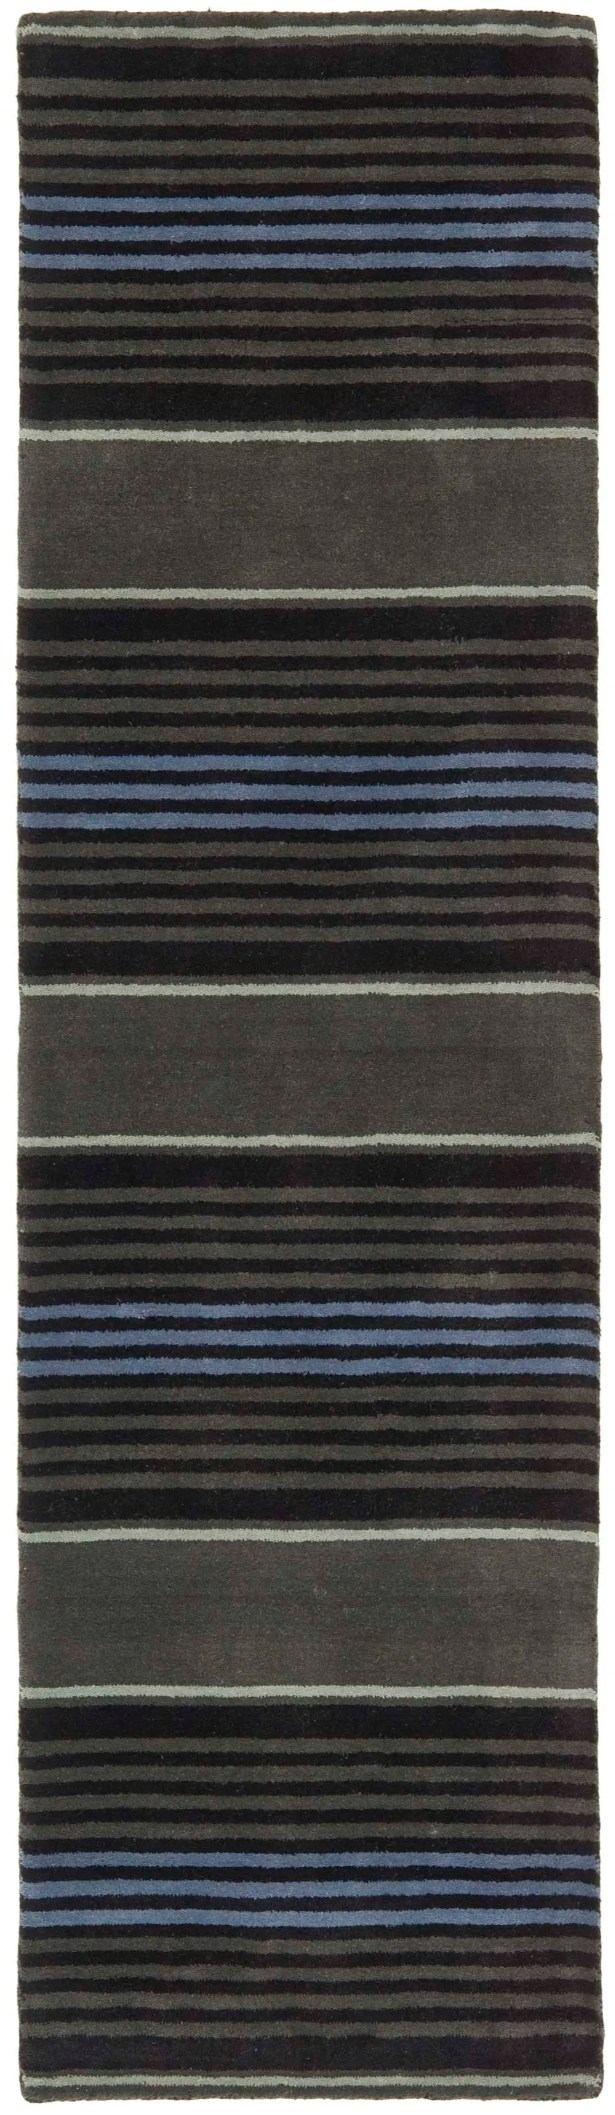 Mcneil Wrought Iron Area Rug Rug Size: Rectangle 5' x 8'